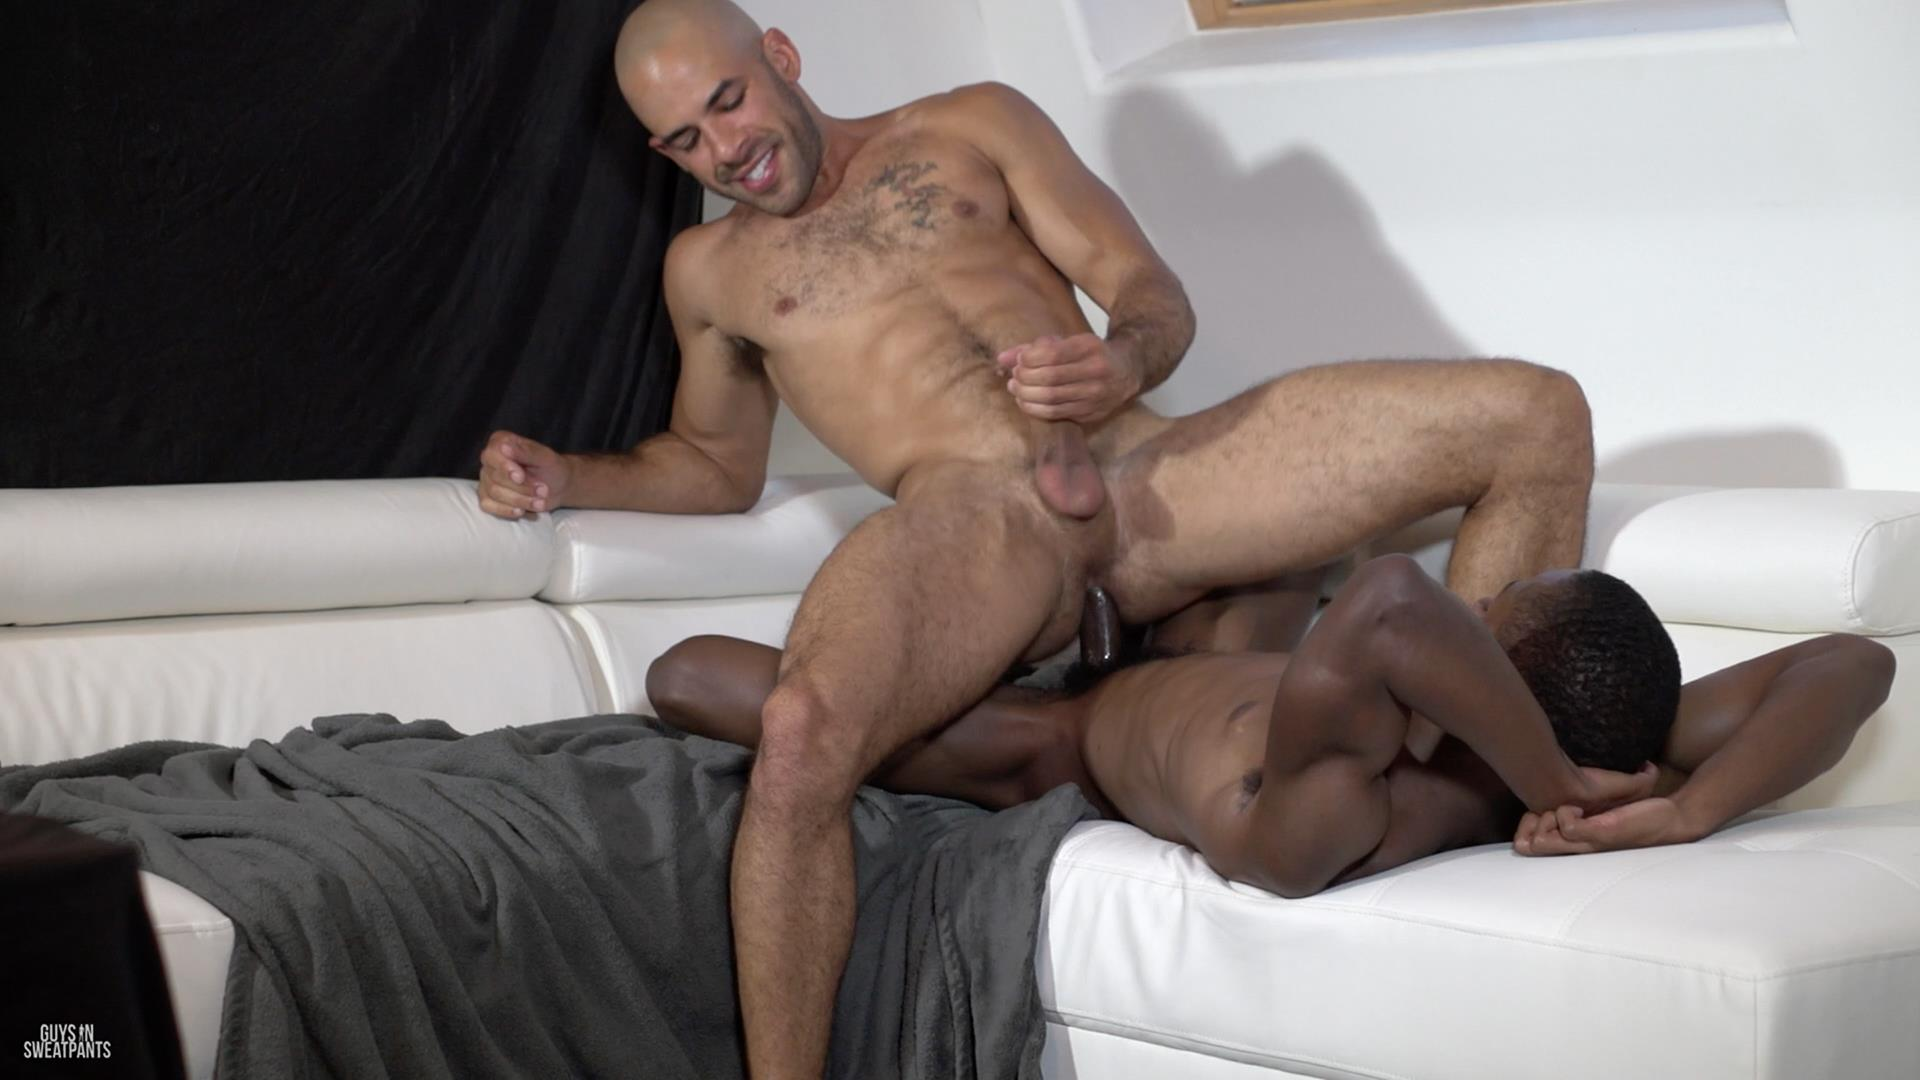 Guys-in-Sweatpants-Austin-Wilde-and-Liam-Cyber-Bareback-Interracial-Sex-Amateur-Gay-Porn-10 Austin Wilde Takes A Big Black Bareback Cock Up The Ass